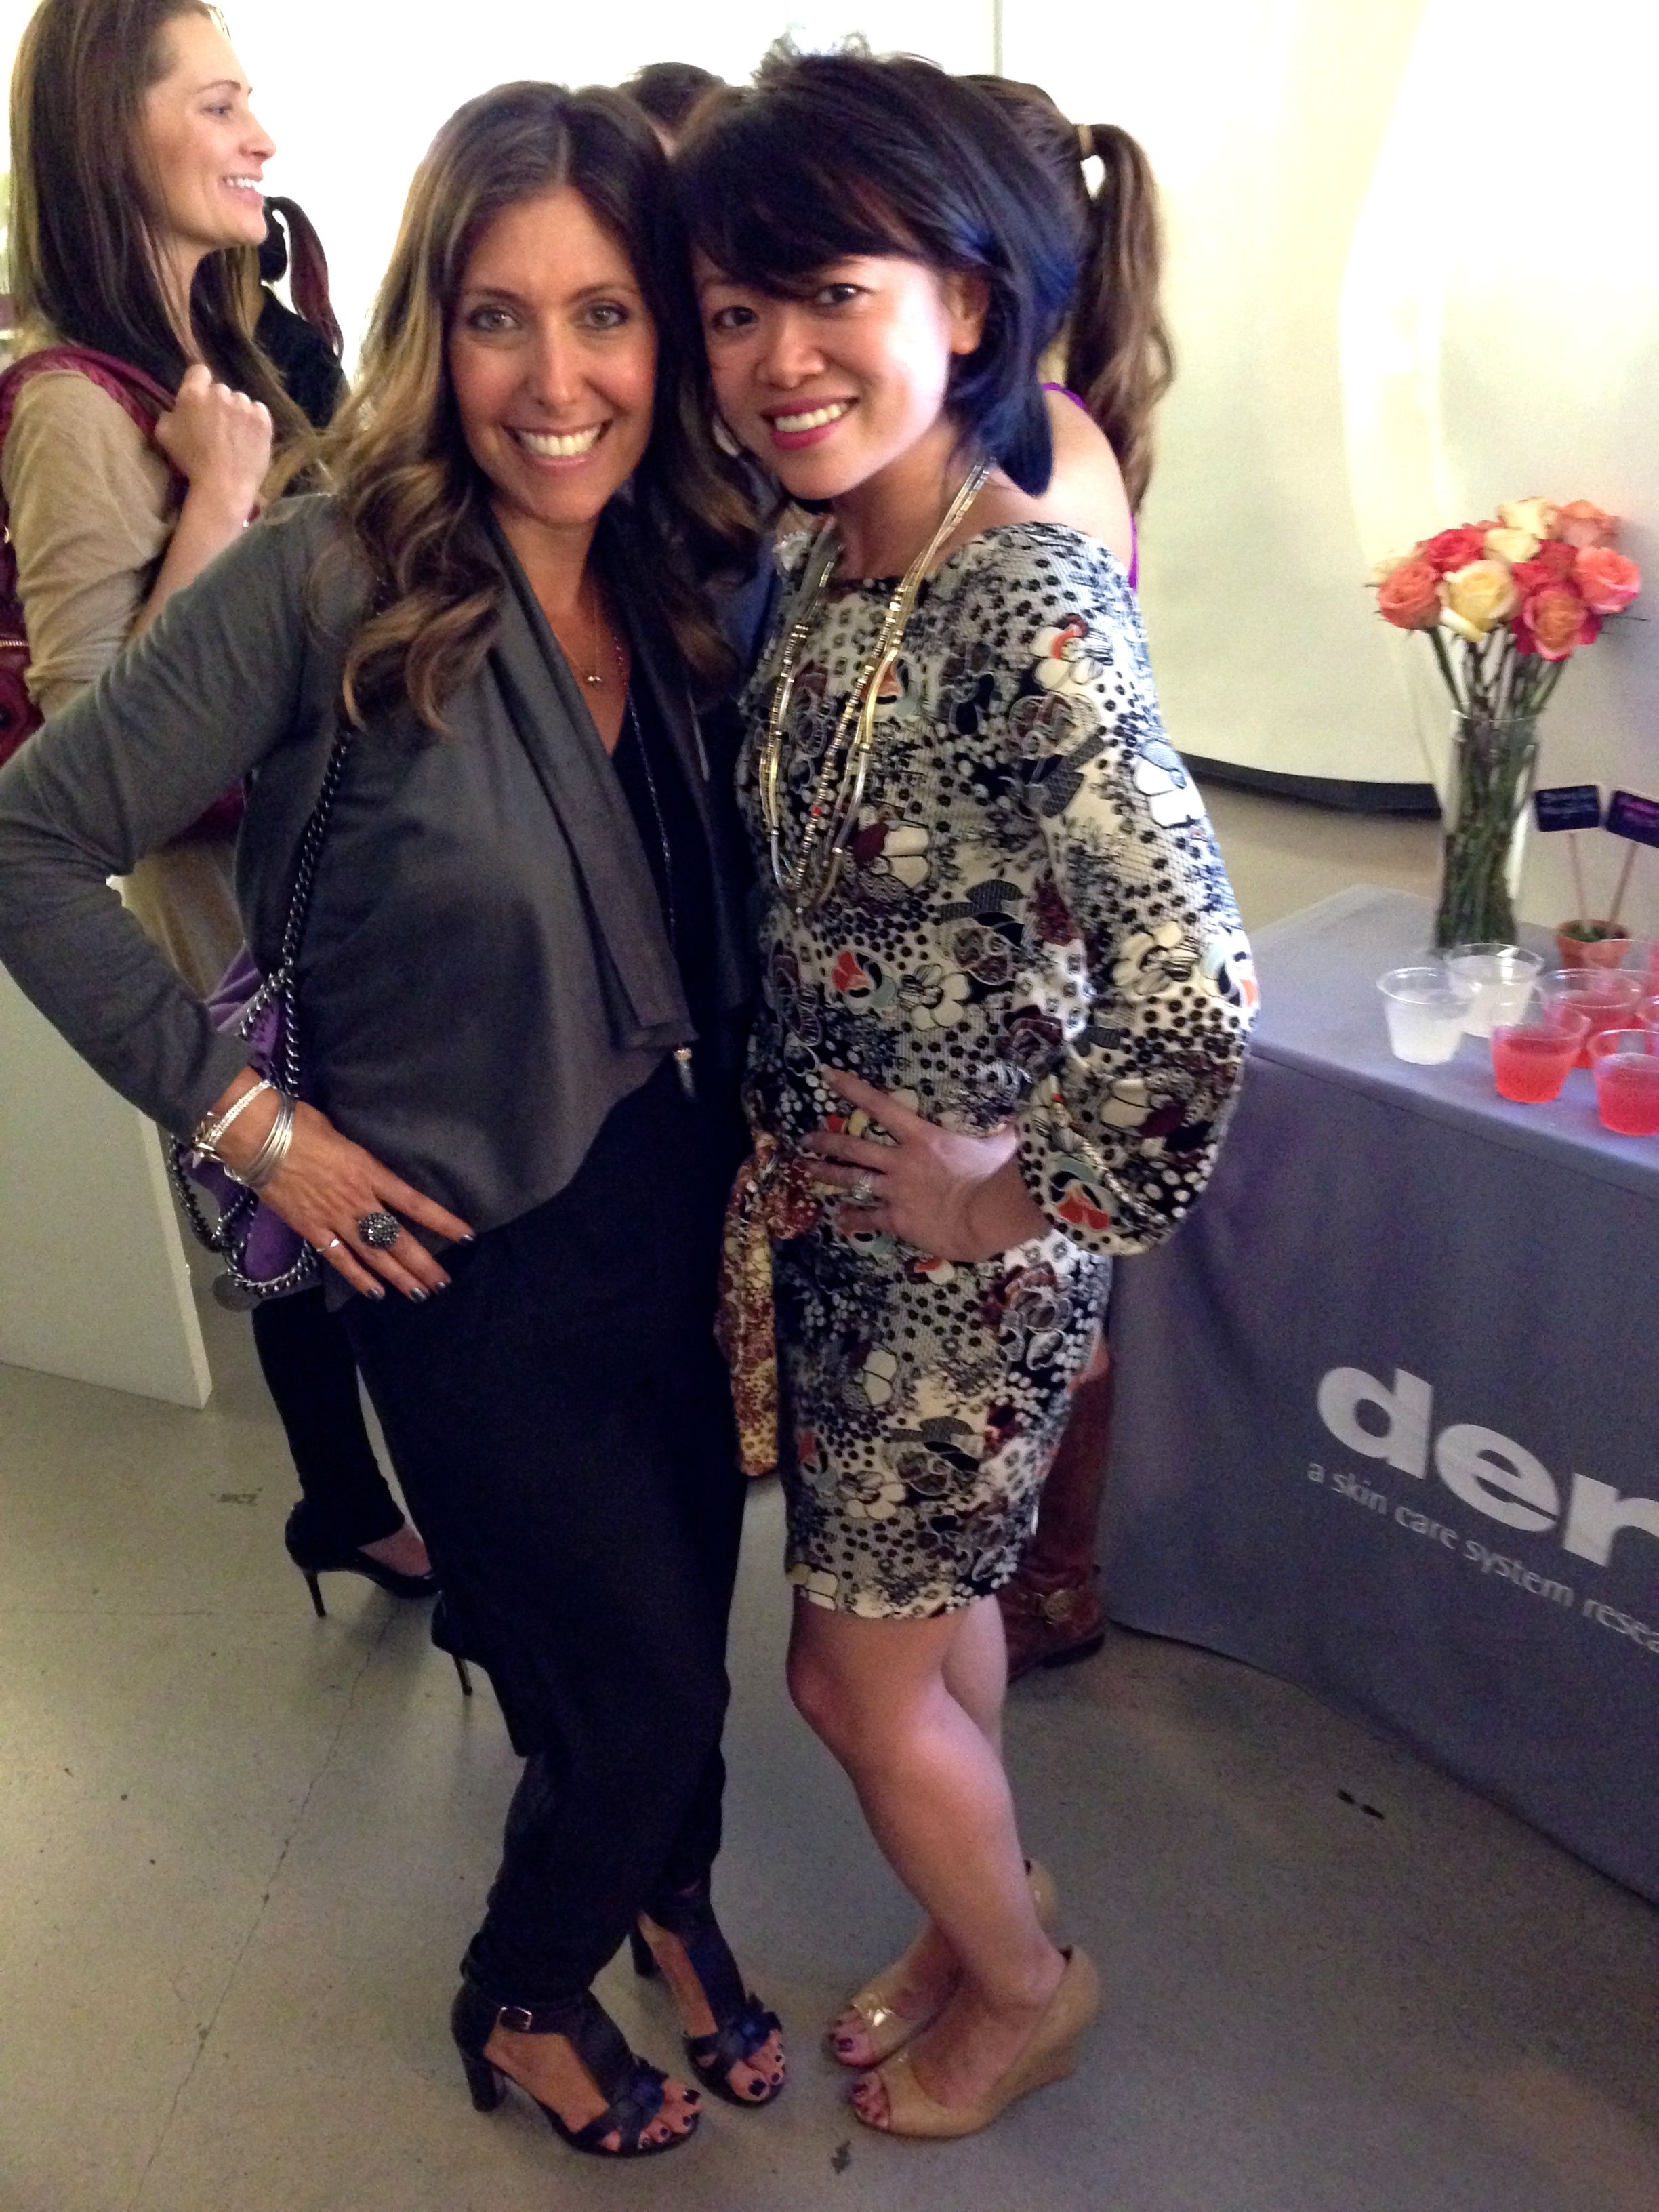 With leadership and lifestyle expert Claudia Chanat the  women's empowerment and networking event held at Dermalogica in Santa Monica.